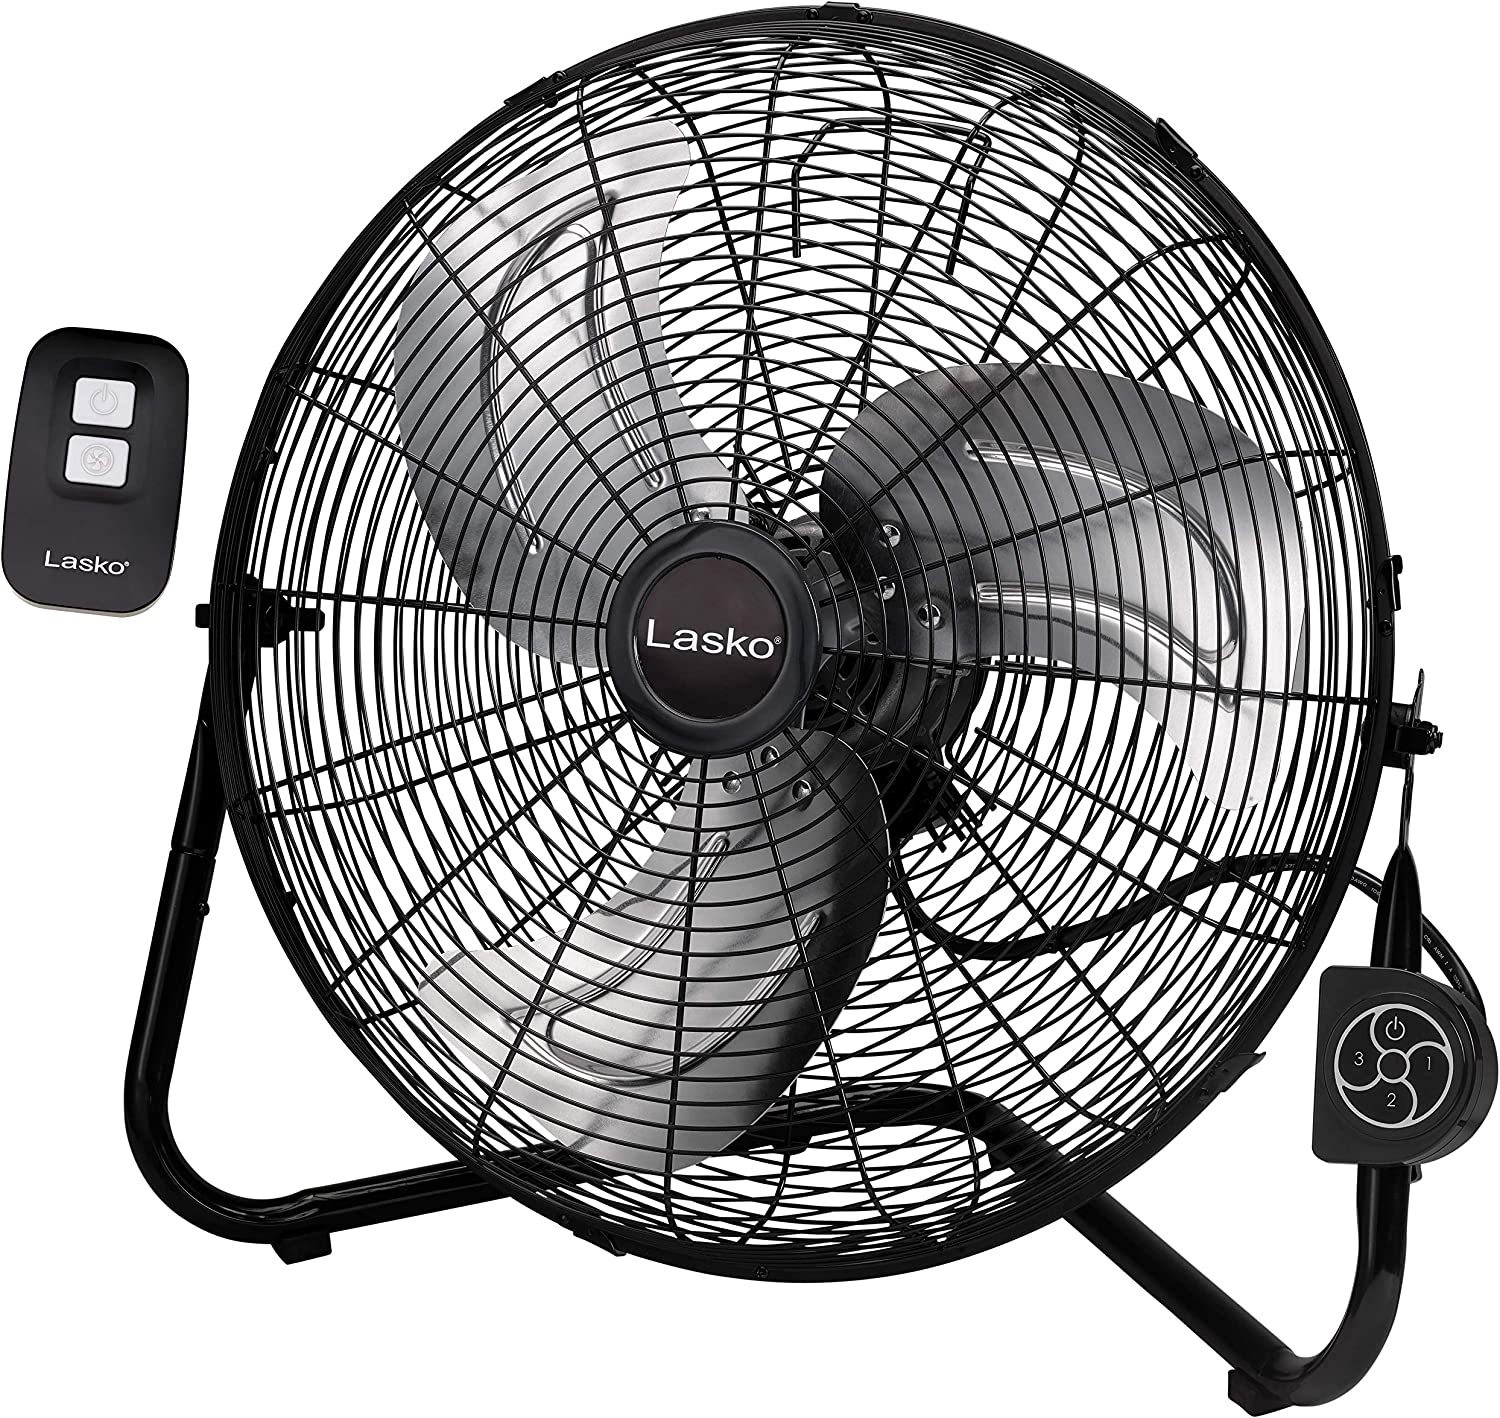 Lasko Metal Commercial Grade Electric Plug-in High Velocity Floor Fan with Wall Mount Option and Remote Control for Indoor Home, Bedroom, Garage, Basement, and Work Shop Use, Black H20660